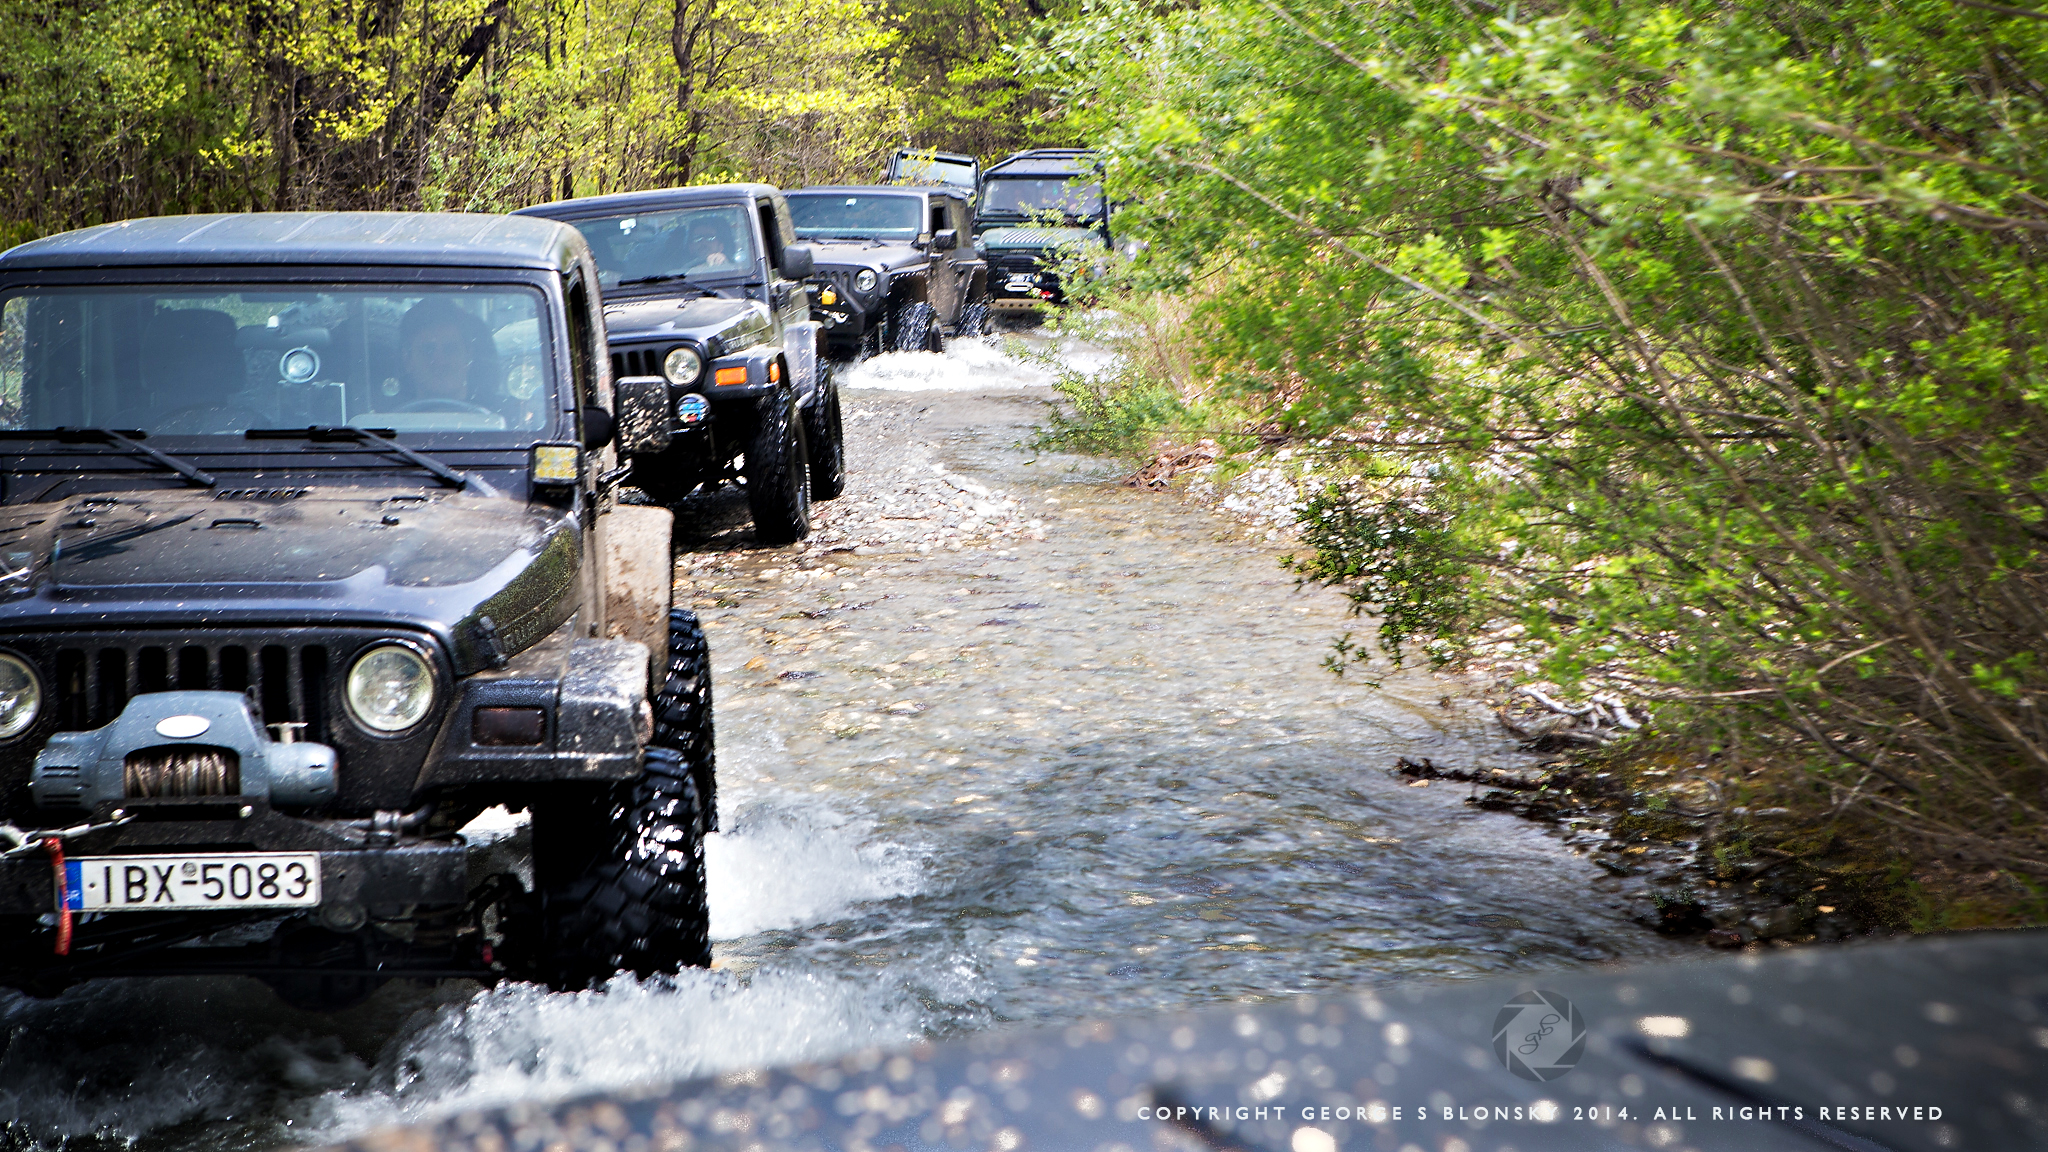 Convoy of Jeeps head up the river seeking our next location for a landscape photography session